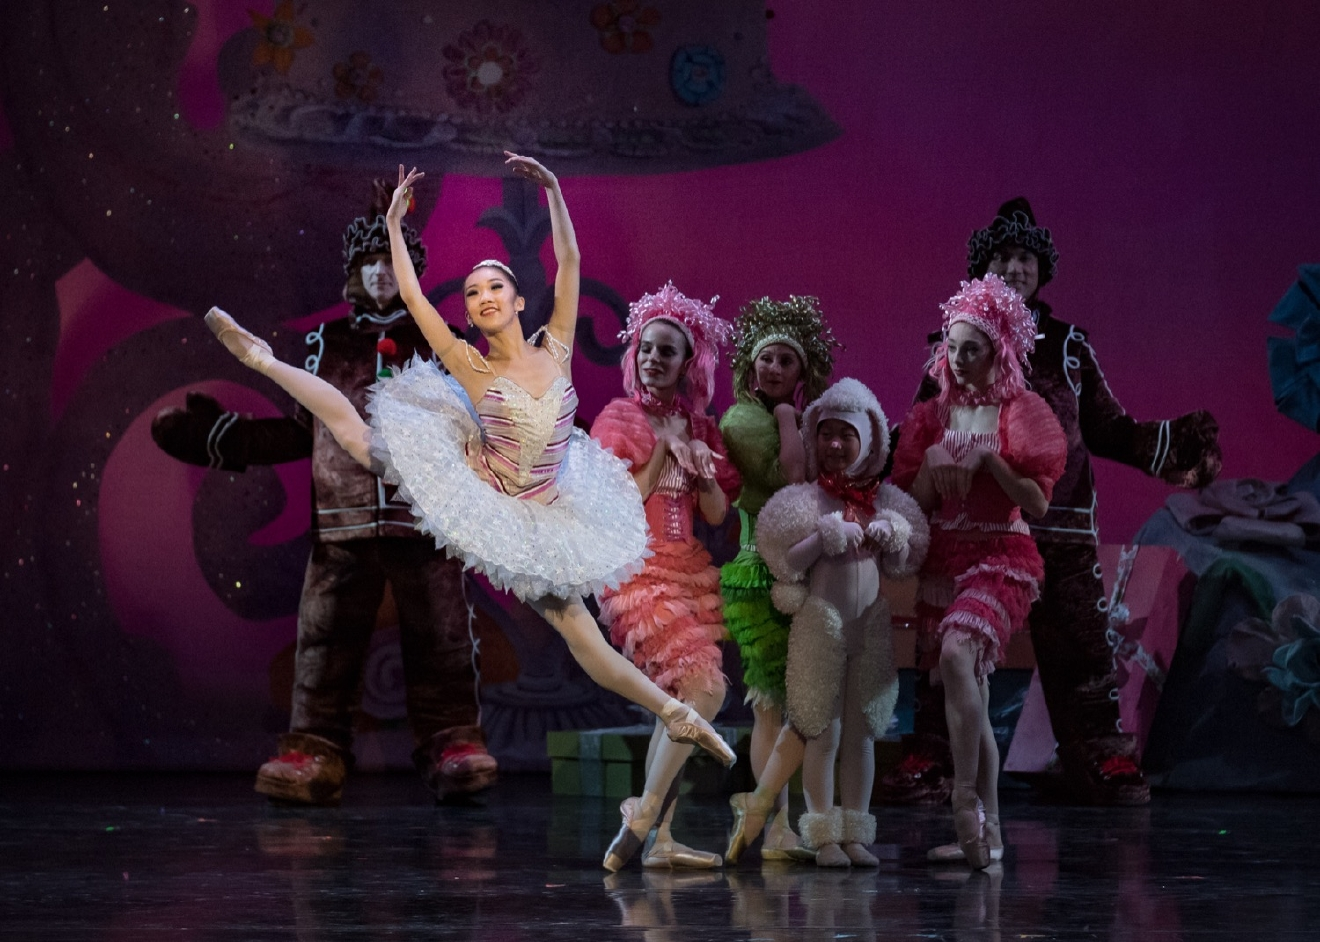 Cincinnati Ballet Soloist Chisako Oga in the foreground as Sugar Plum Fairy in Cincinnati Ballet's The Nutcracker performed at the Kennedy Center. / Image: Peter Mueller